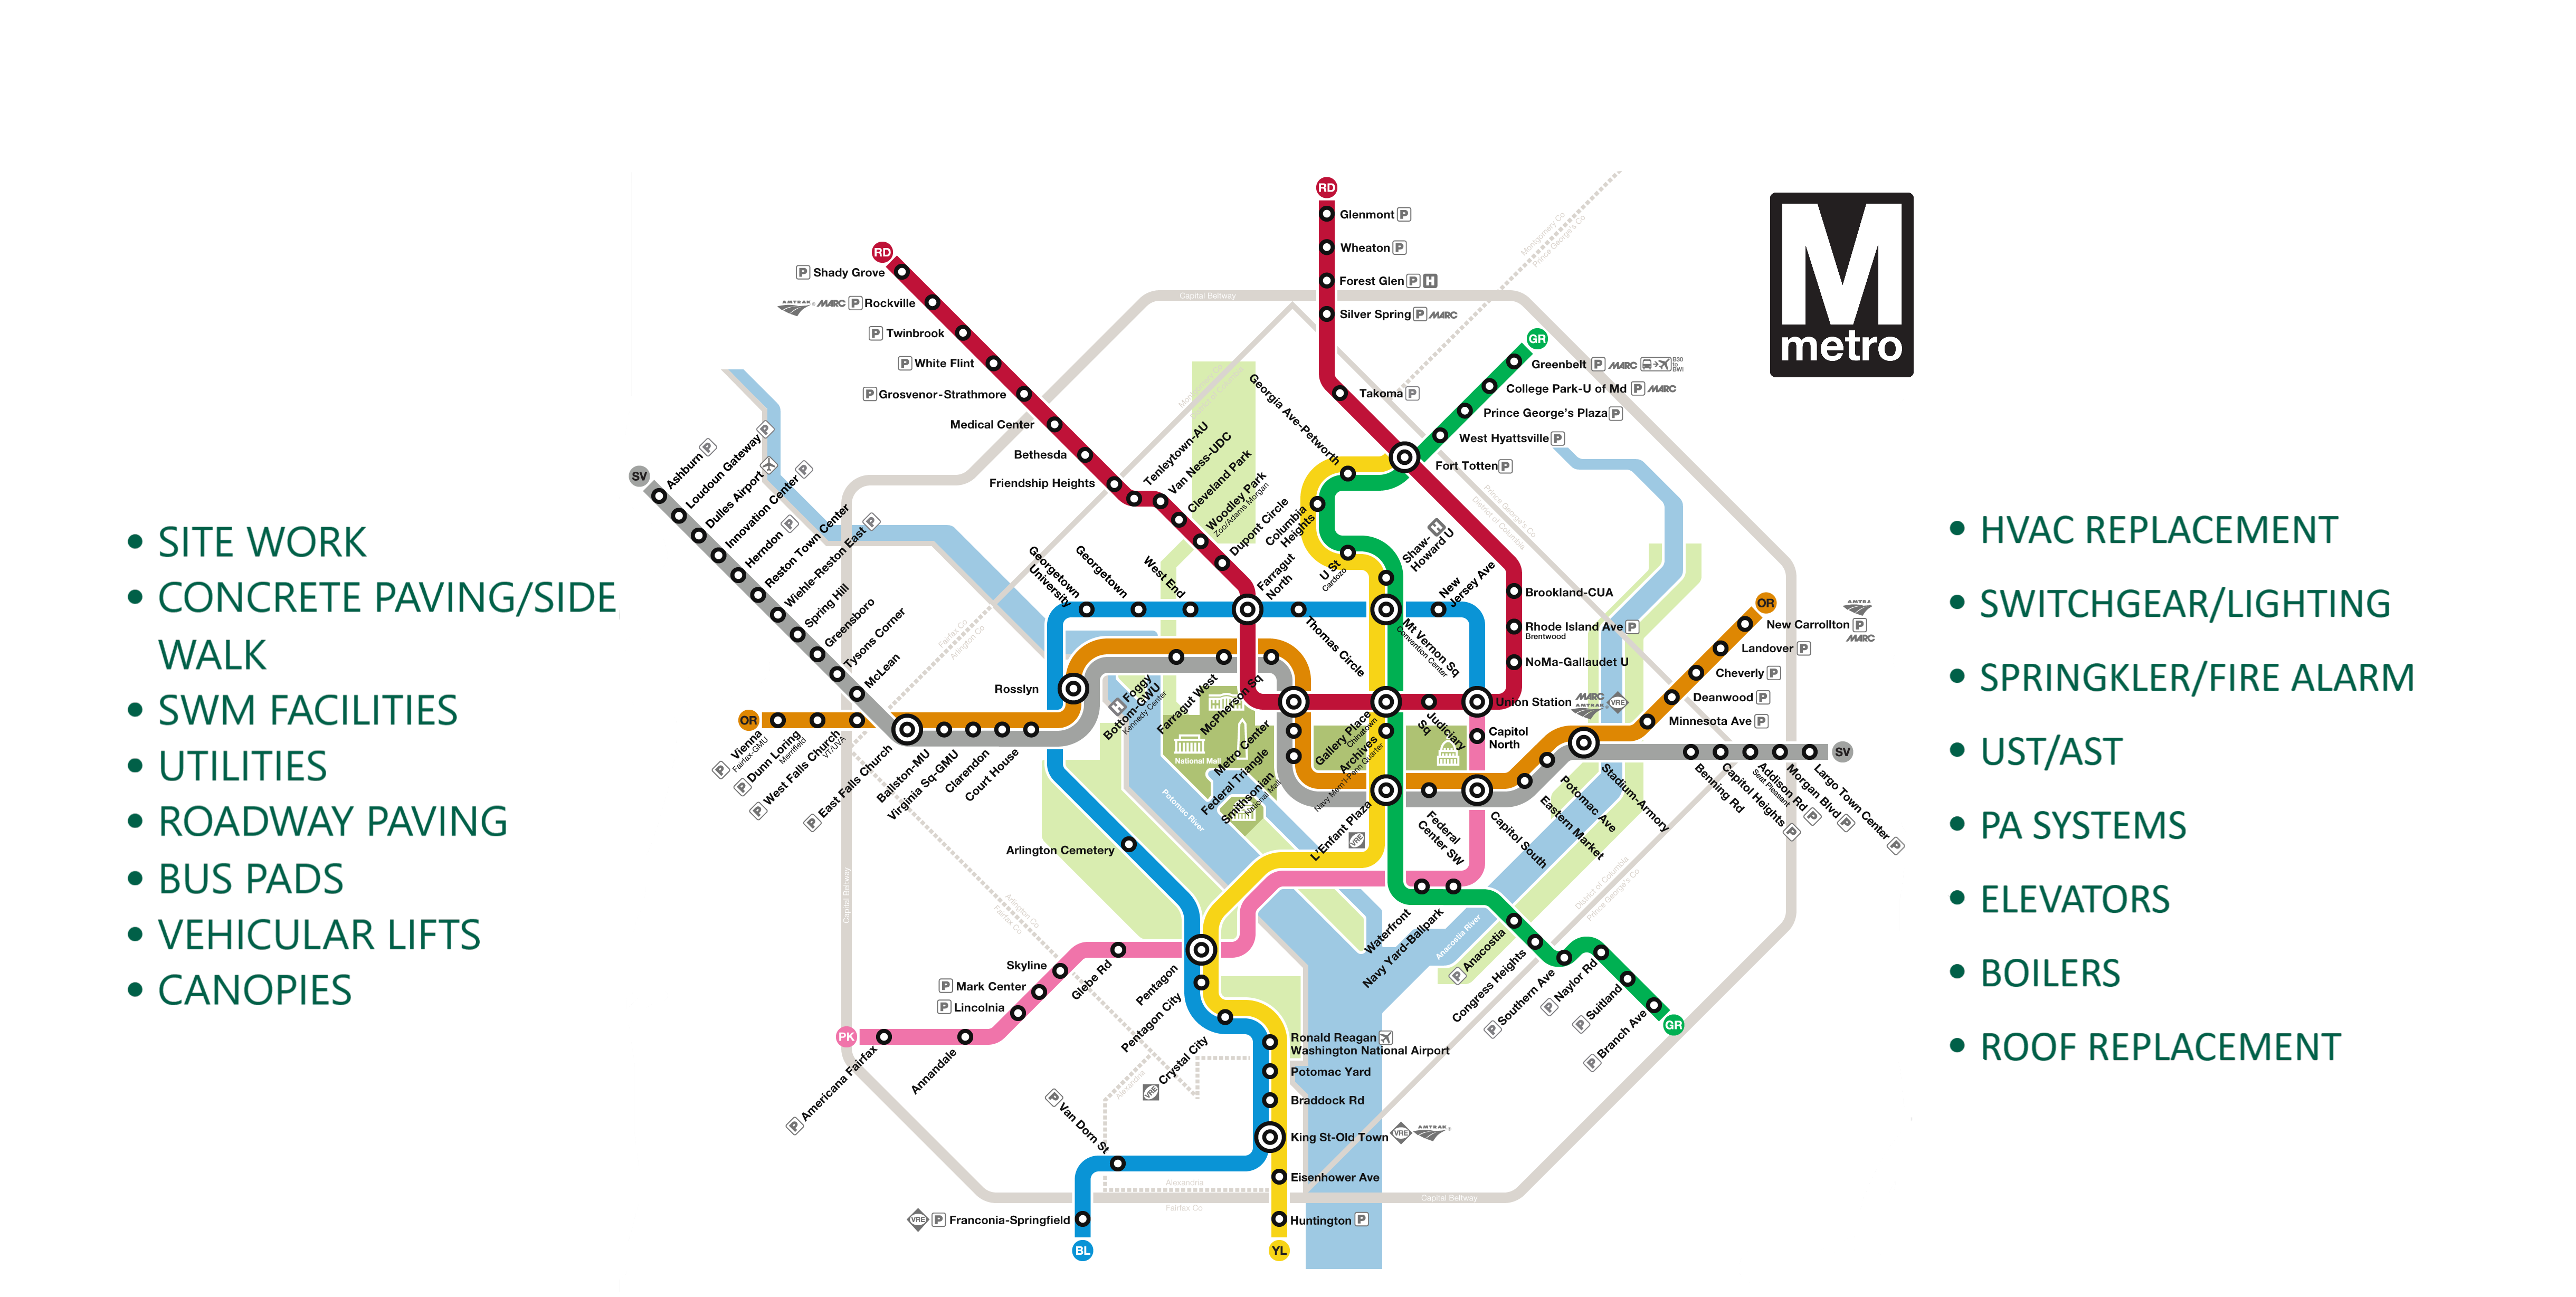 Metro map & Potomac provided different services list